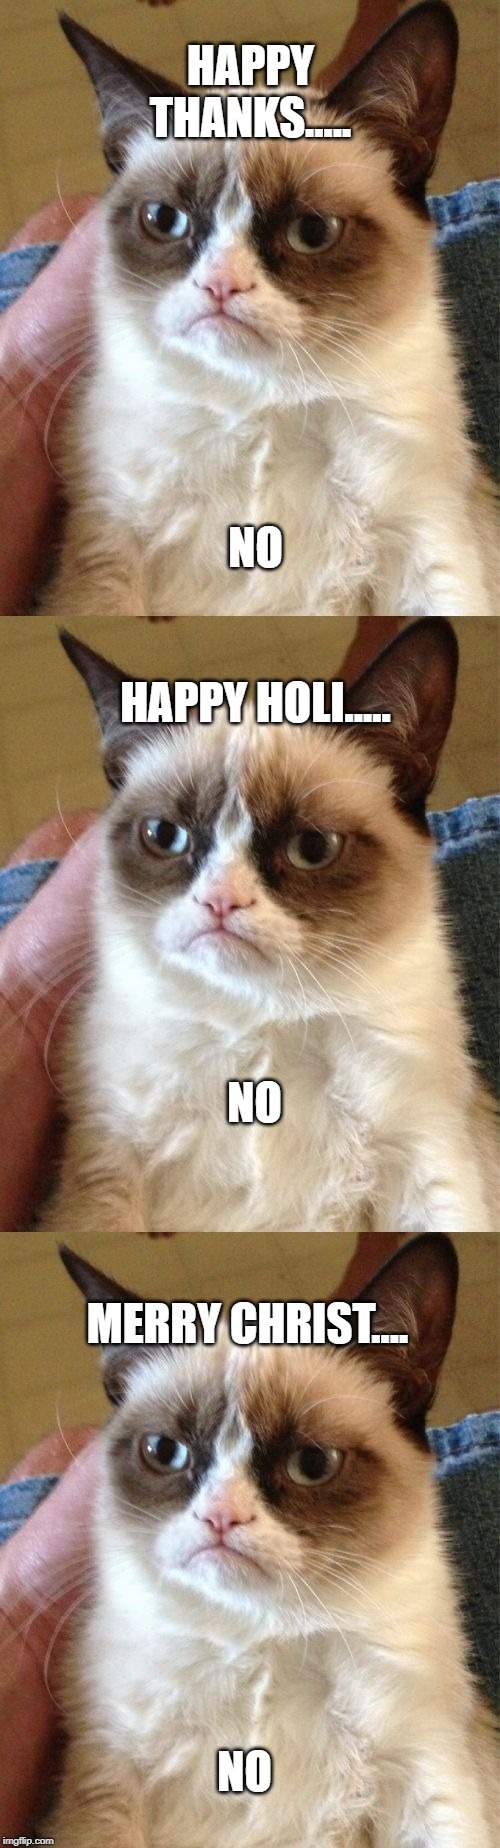 HAPPY THANKS..... NO HAPPY HOLI..... NO MERRY CHRIST.... NO | image tagged in memes,grumpy cat | made w/ Imgflip meme maker